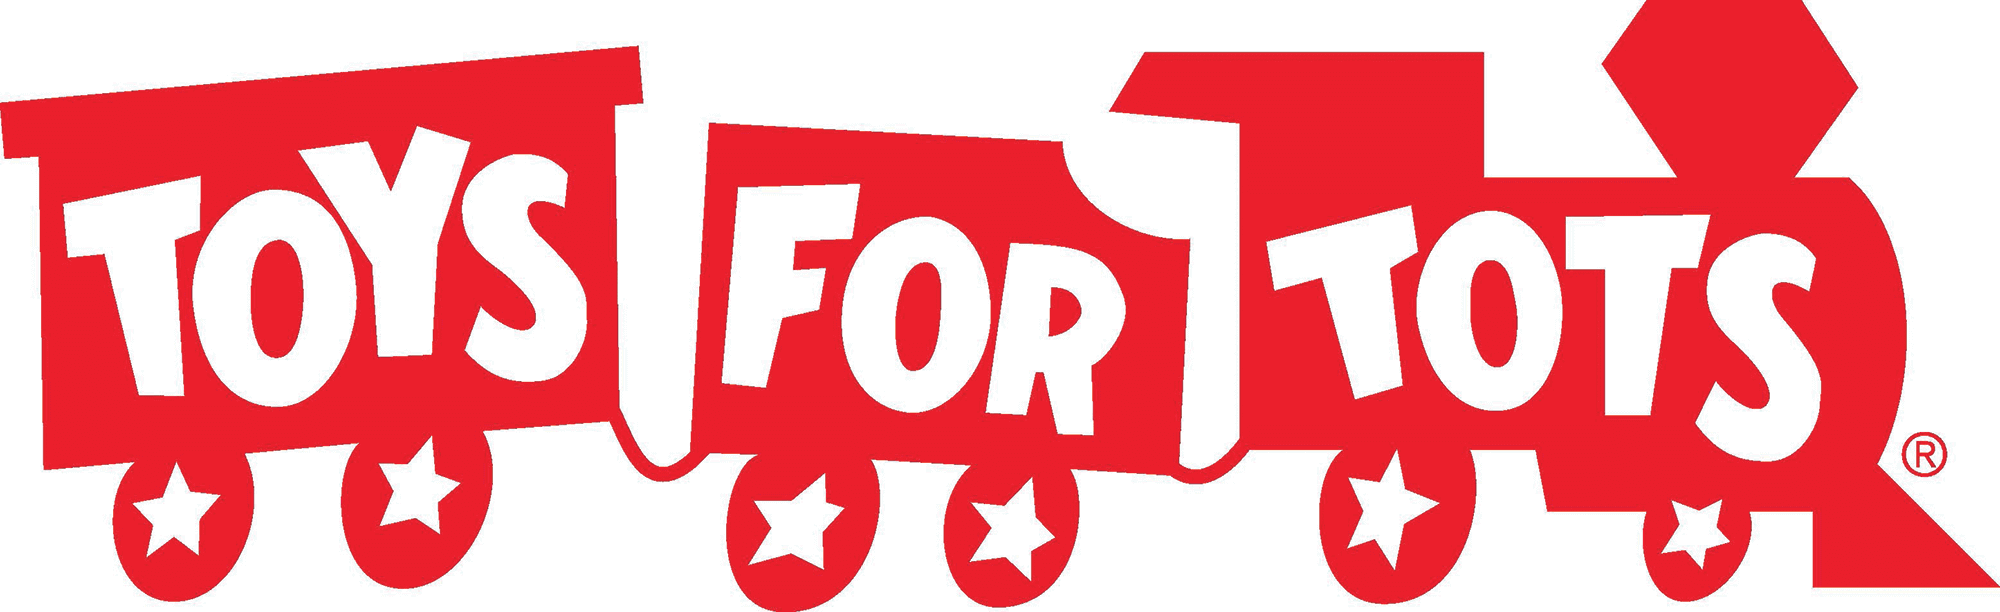 Toys For Tots - Large Logo